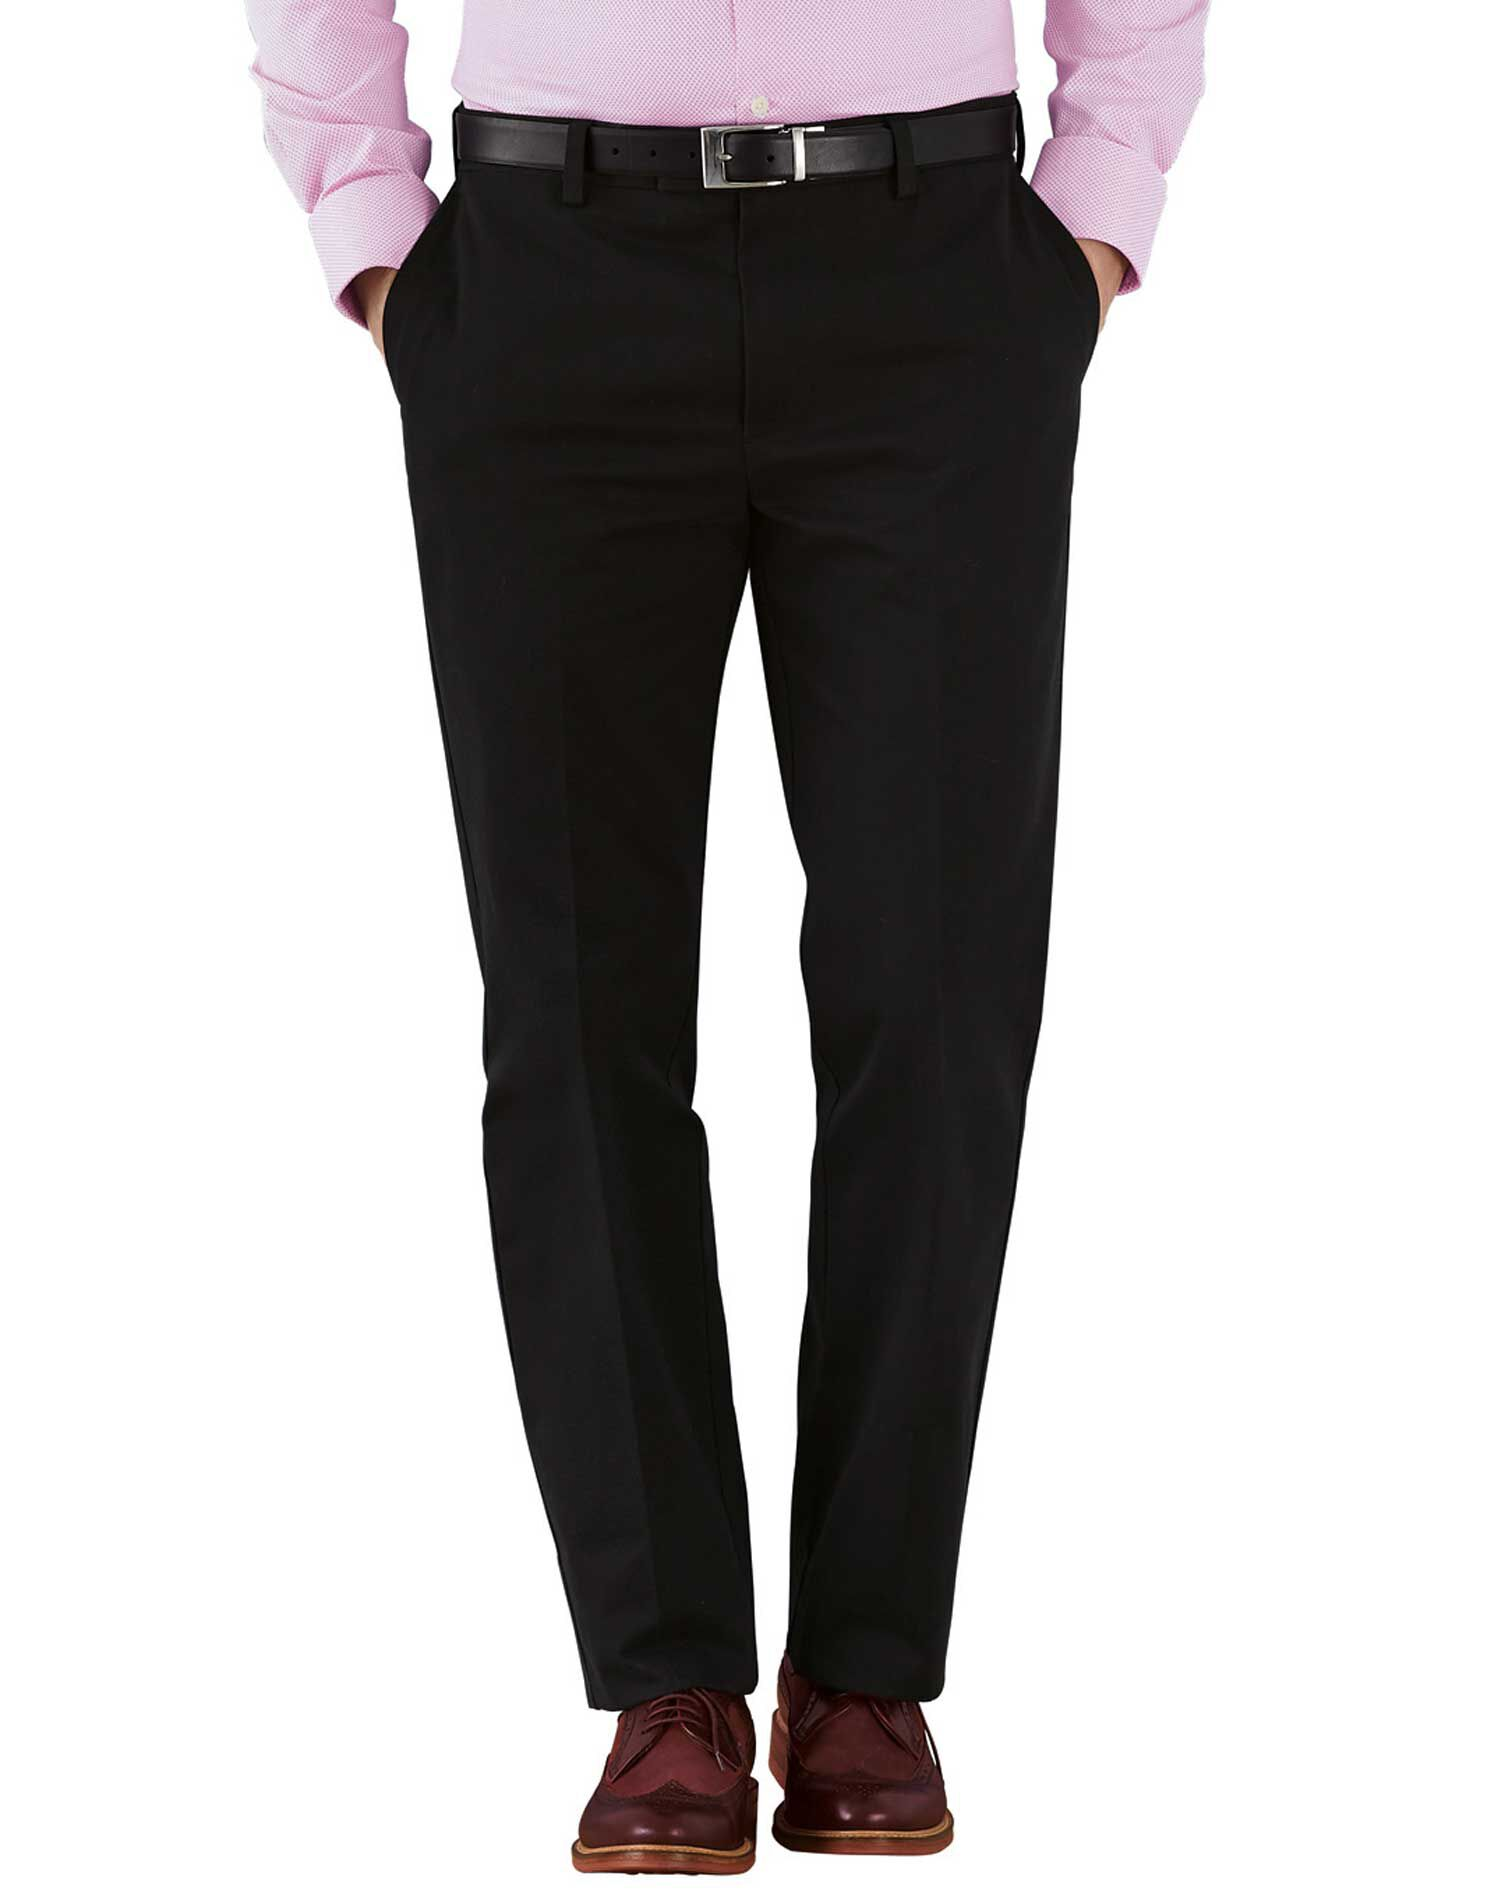 Black Slim Fit Flat Front Non-Iron Cotton Chino Trousers Size W36 L30 by Charles Tyrwhitt